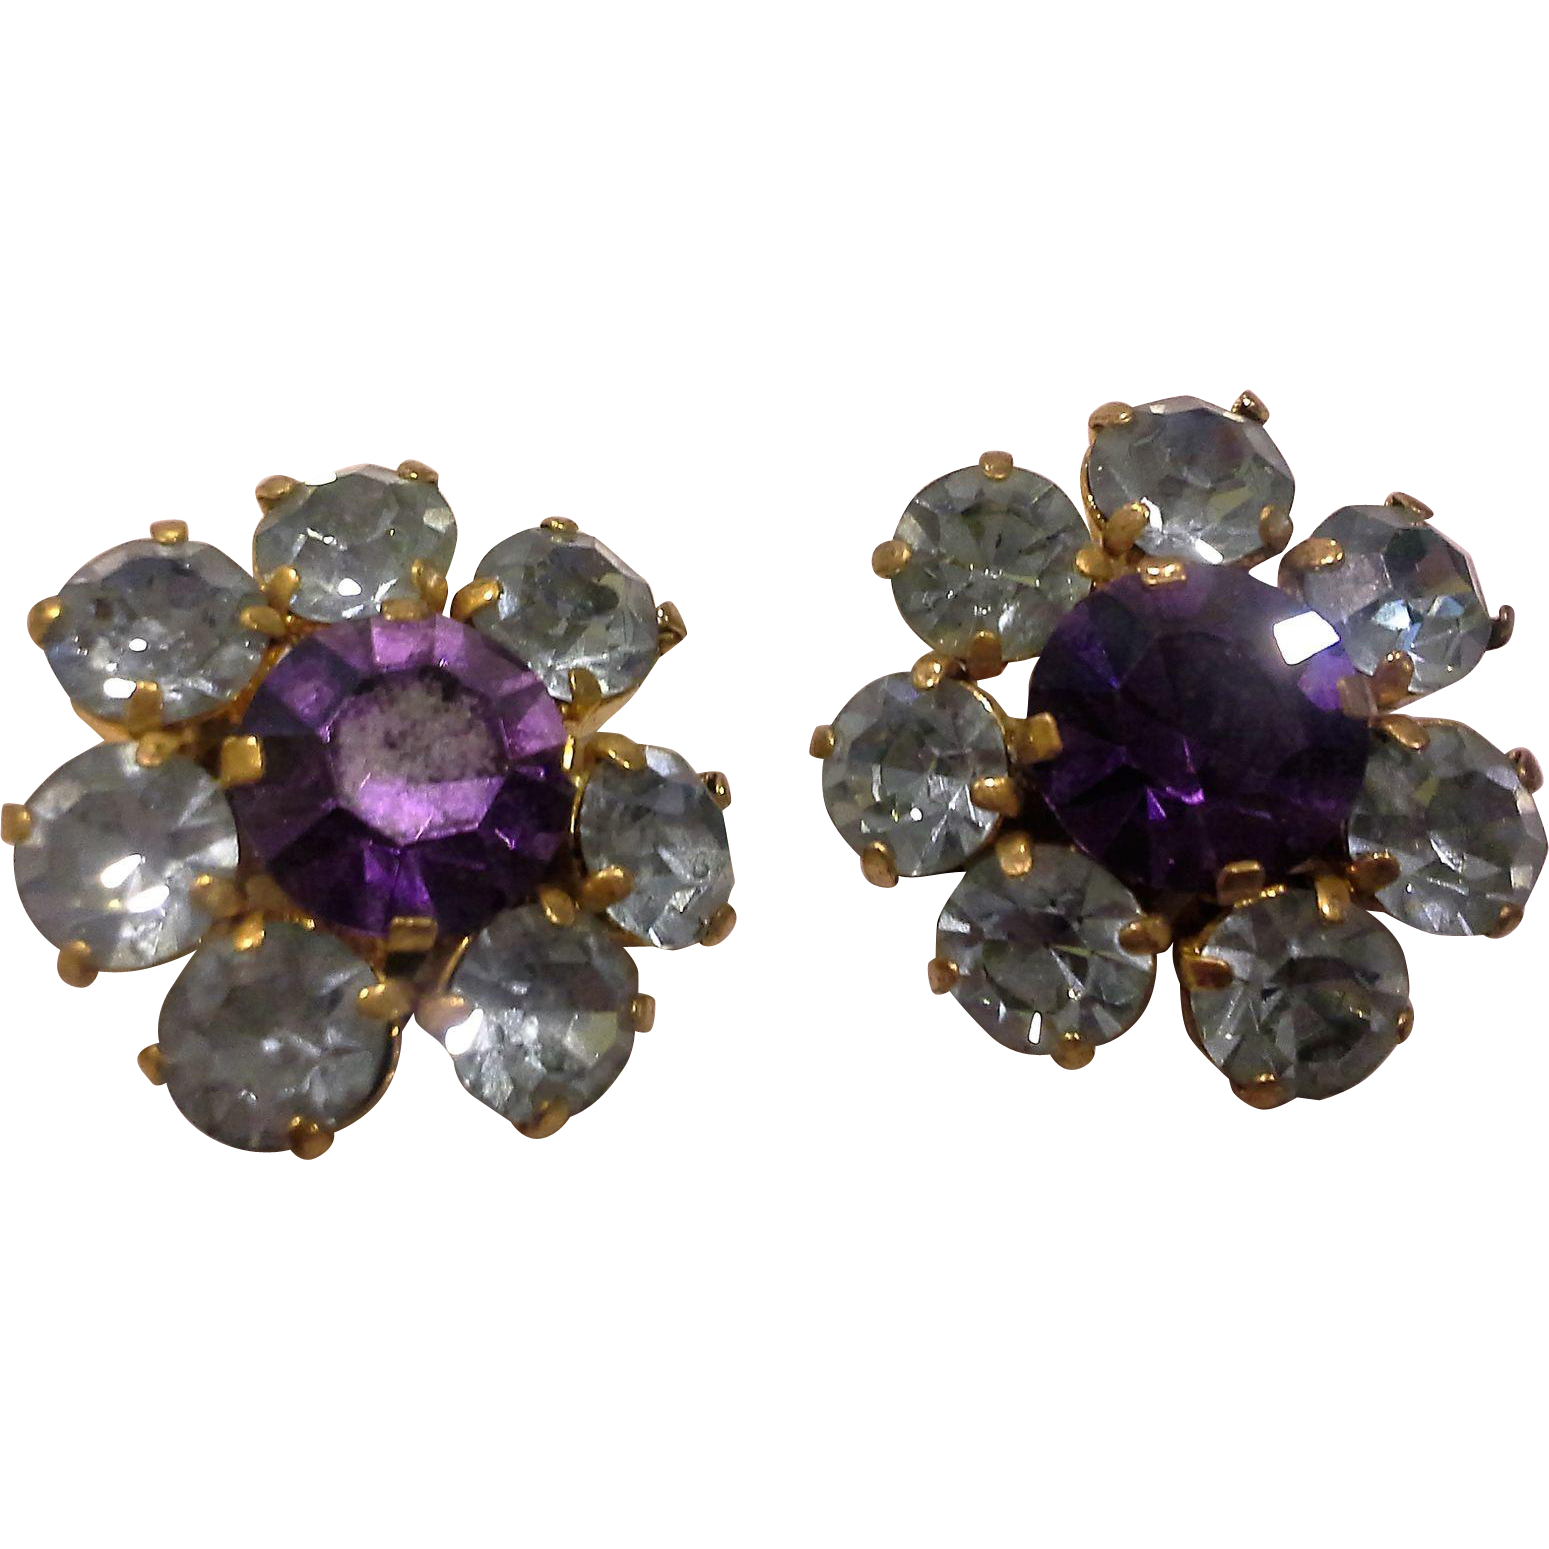 Austrian Crystal Rhinestone Earrings Ice Blue Amethyst Purple Gold Tone Clips